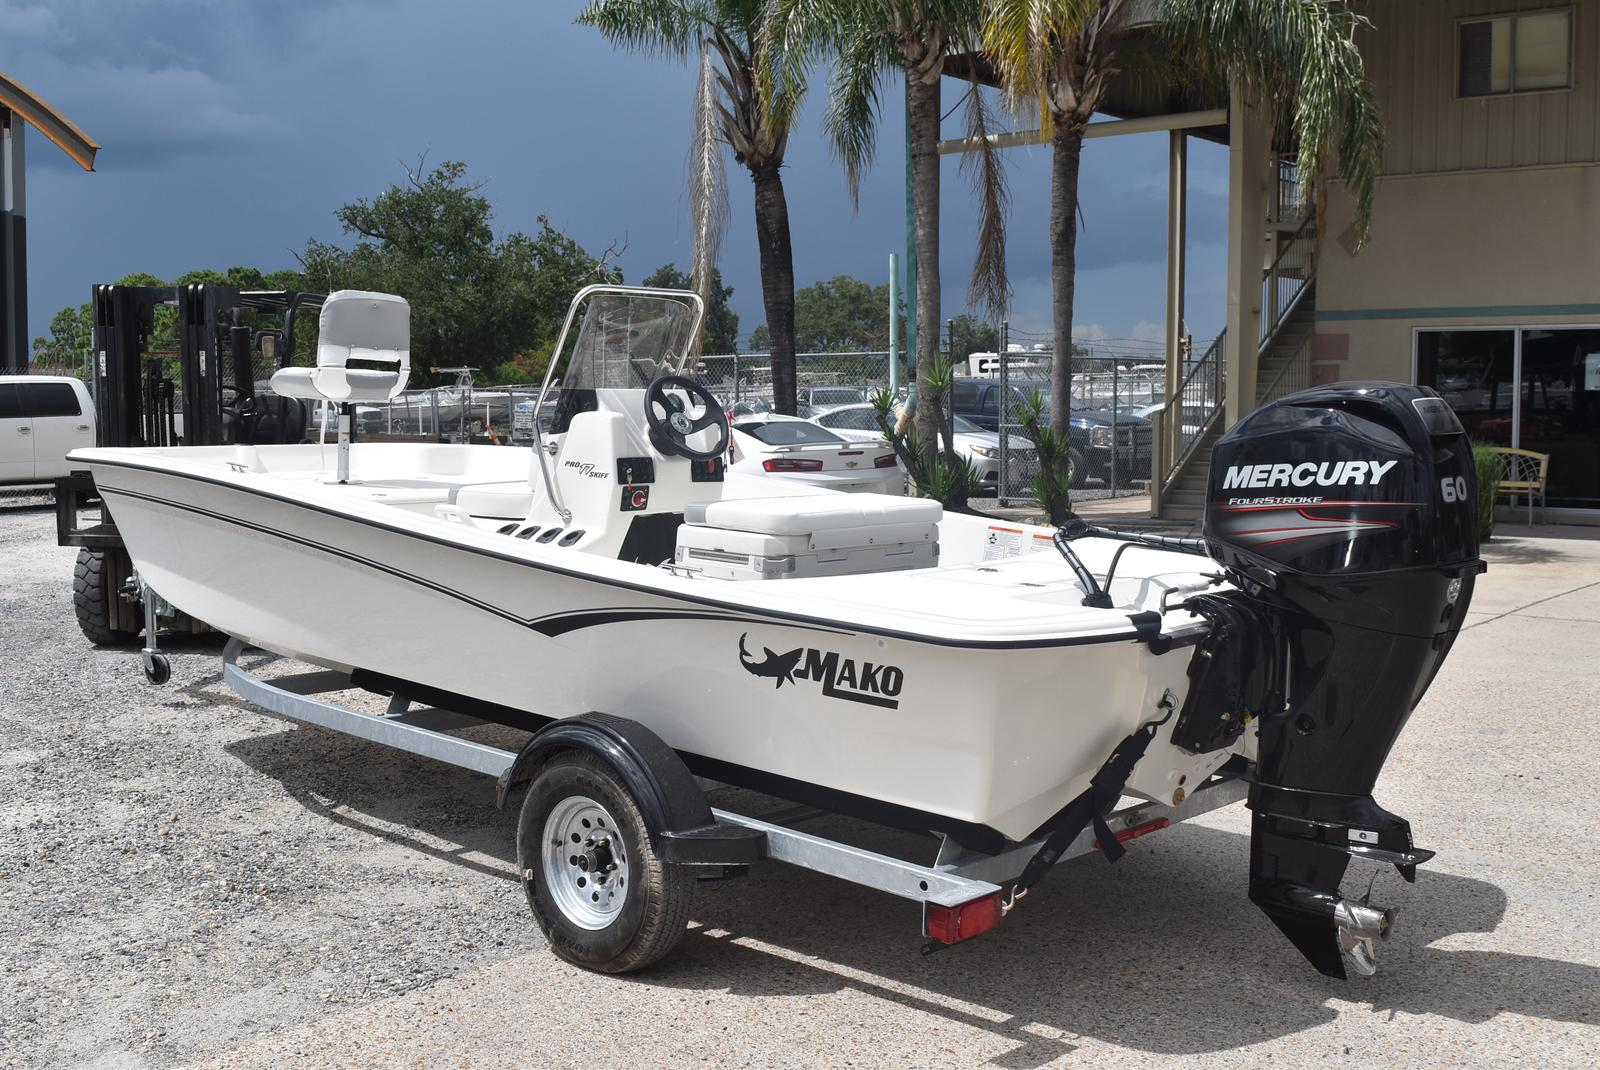 2020 Mako boat for sale, model of the boat is Pro Skiff 17, 75 ELPT & Image # 161 of 702